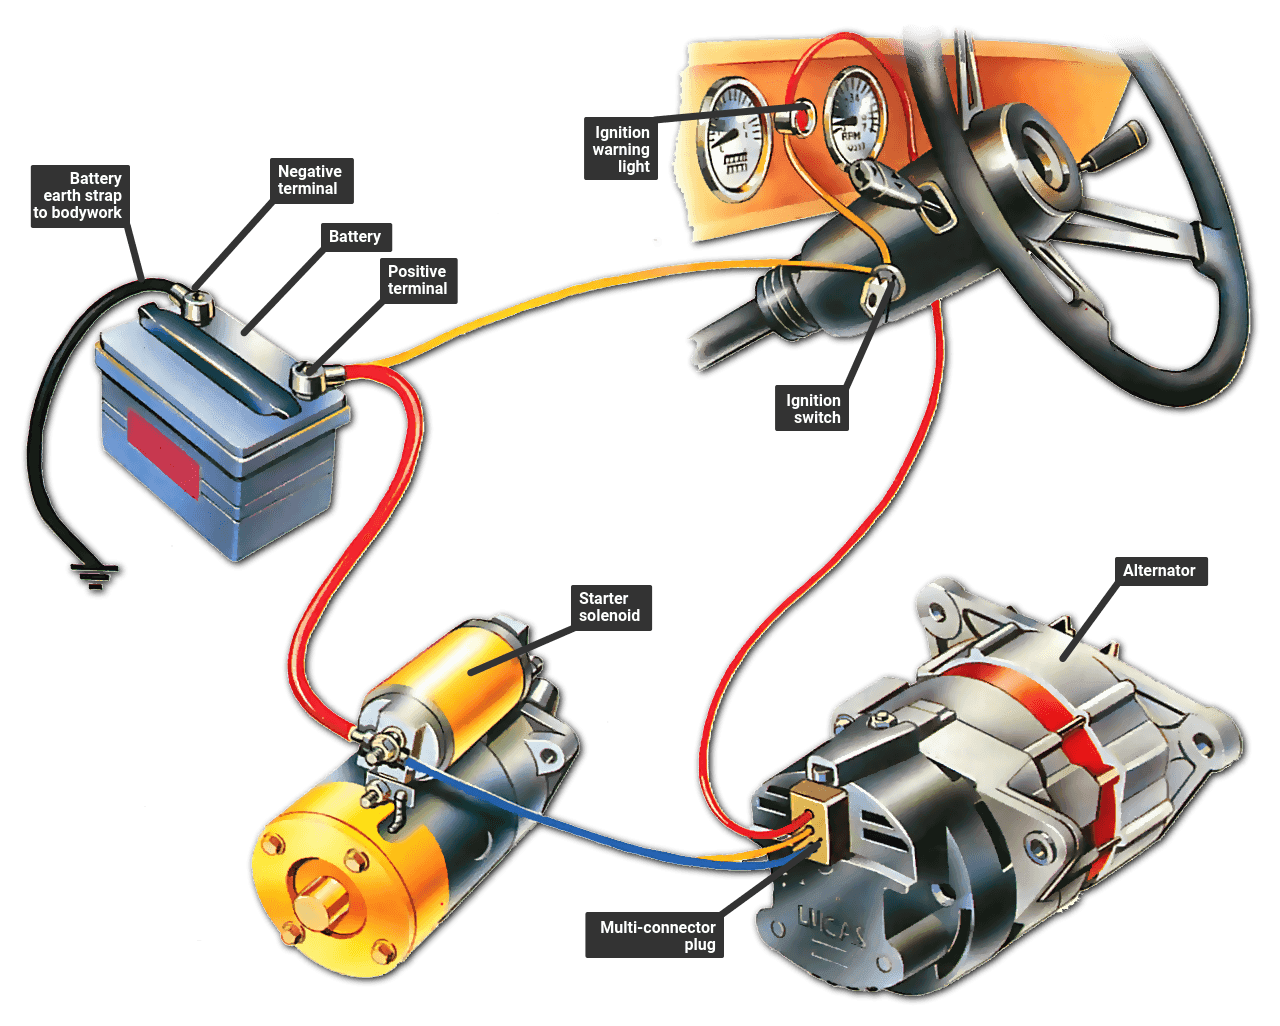 Troubleshooting The Ignition Warning Light How A Car Works Early Delco Starter Generator Wiring Diagram